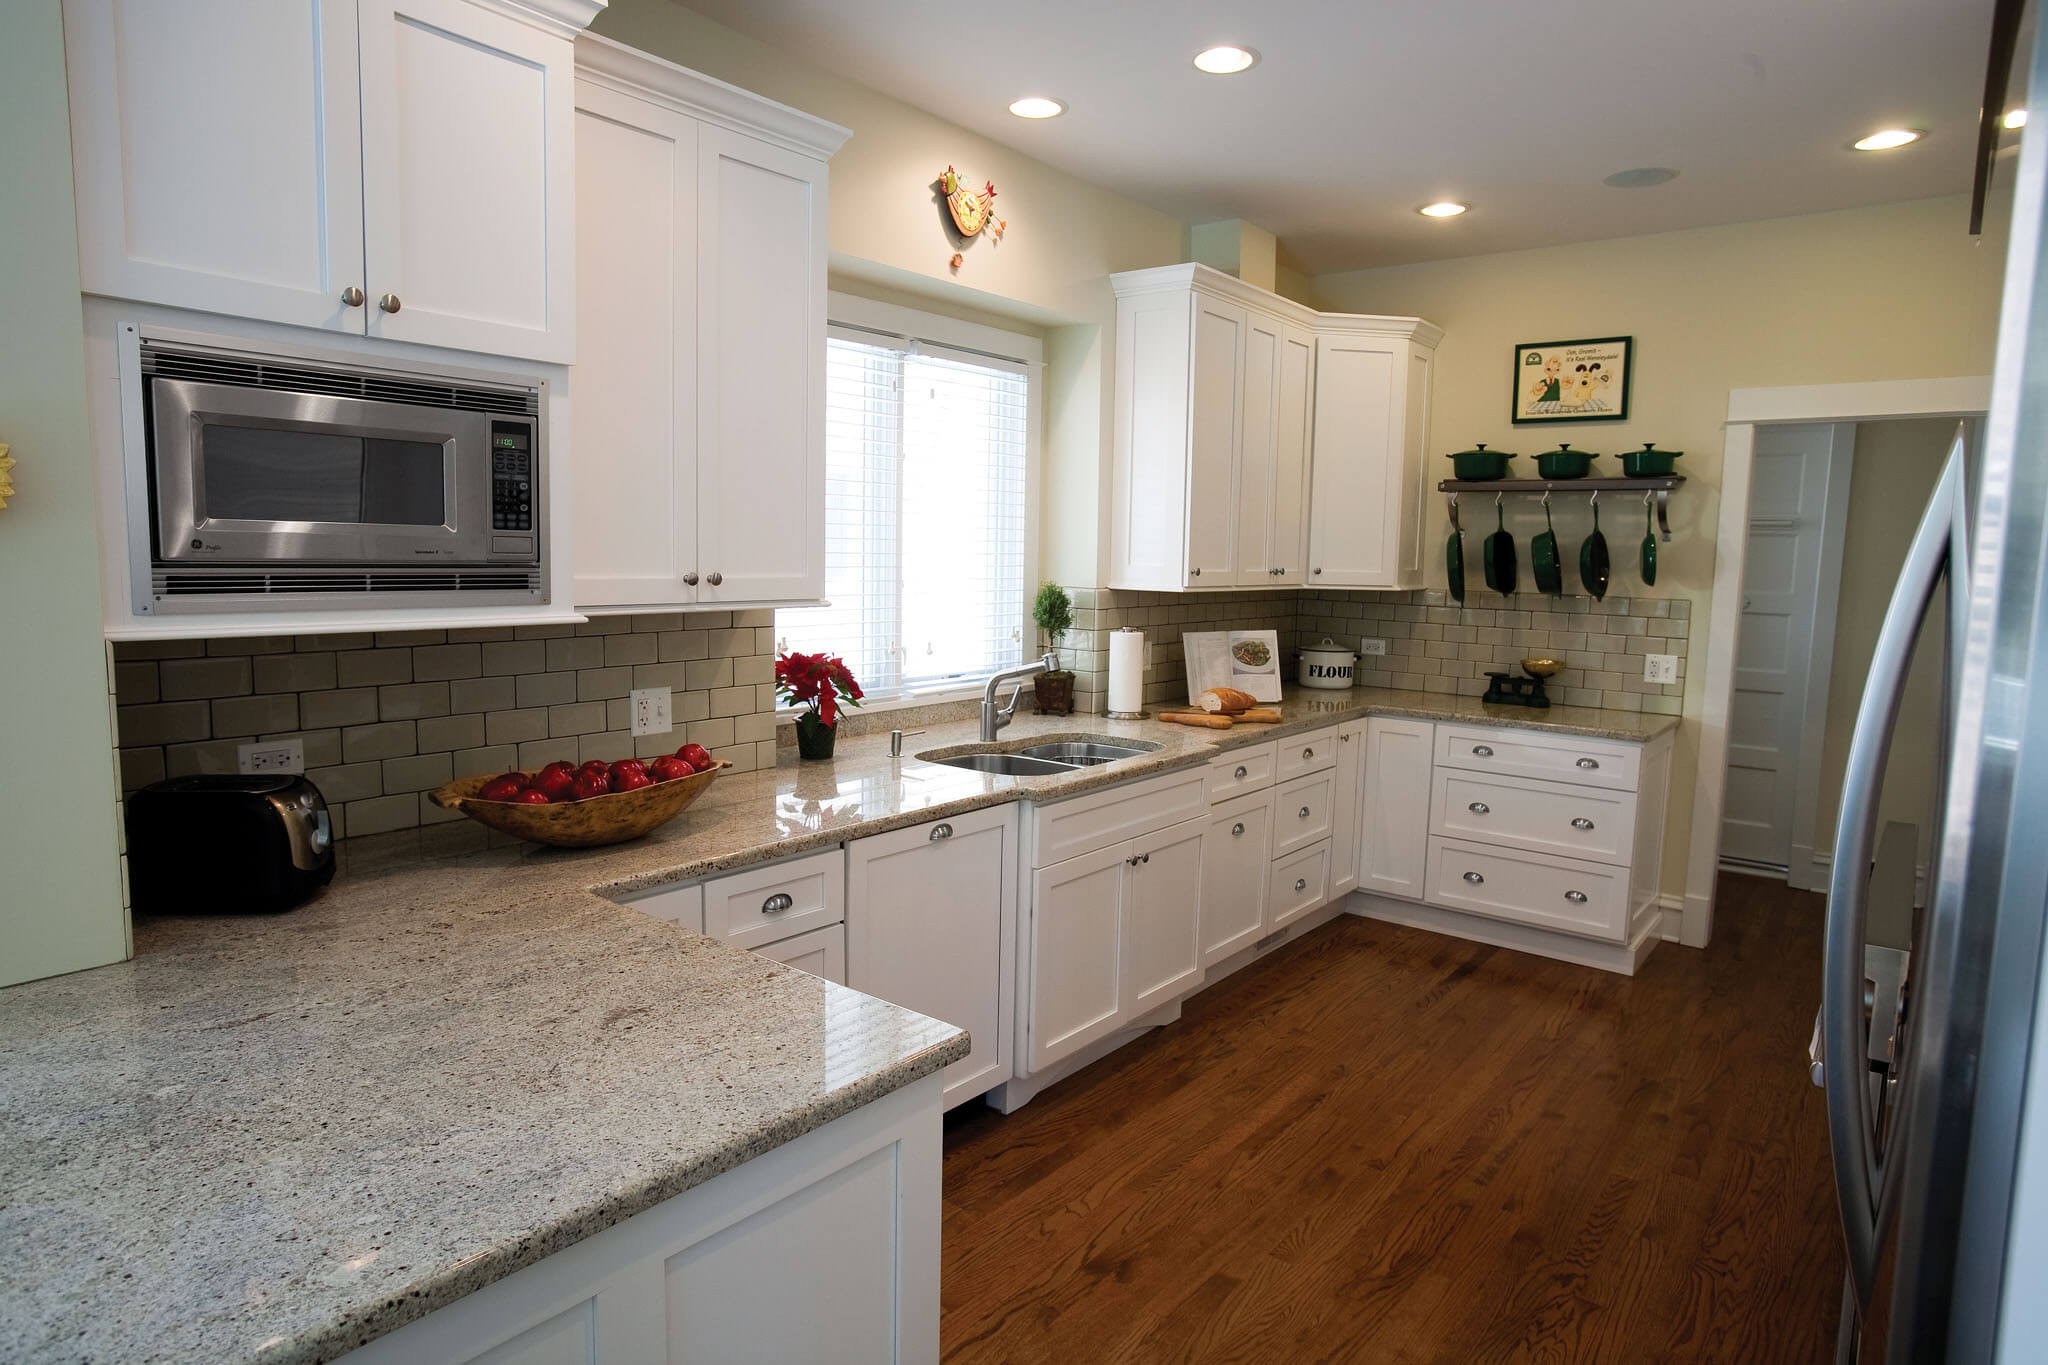 Kitchen Remodeling Ideas Pictures  15 Kitchen Remodeling Ideas Designs & s TheyDesign